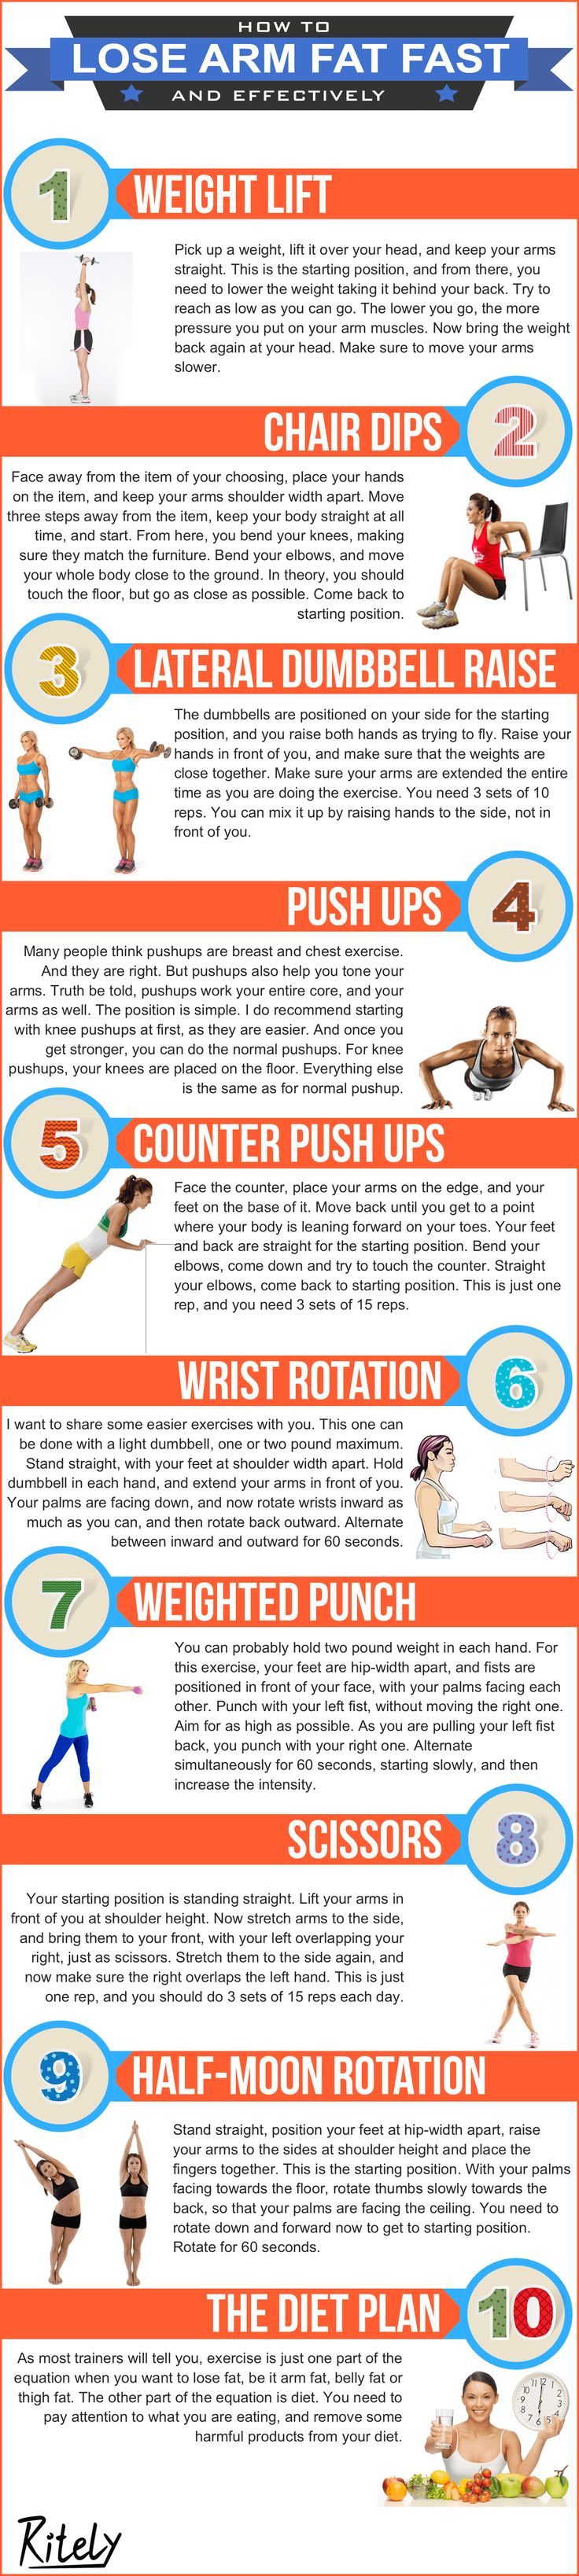 Best 25 lose arm fat ideas on pinterest arm flab arm fat and how to lose arm fat fast and effectively ccuart Images